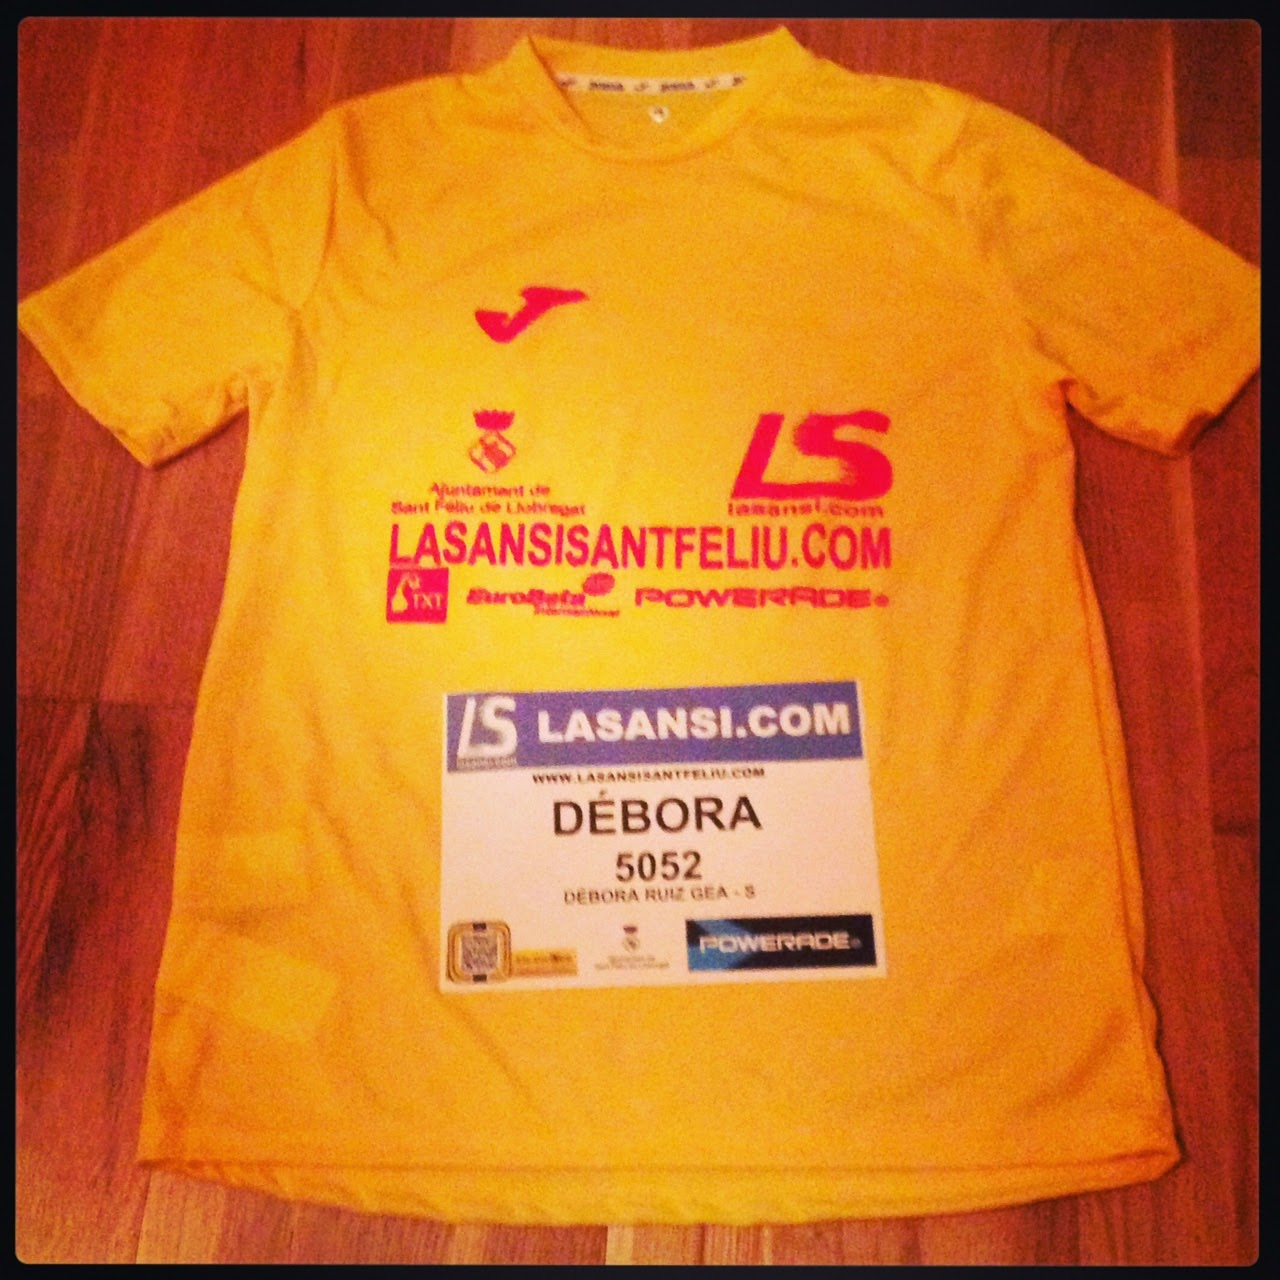 camiseta lasansi sant feliu